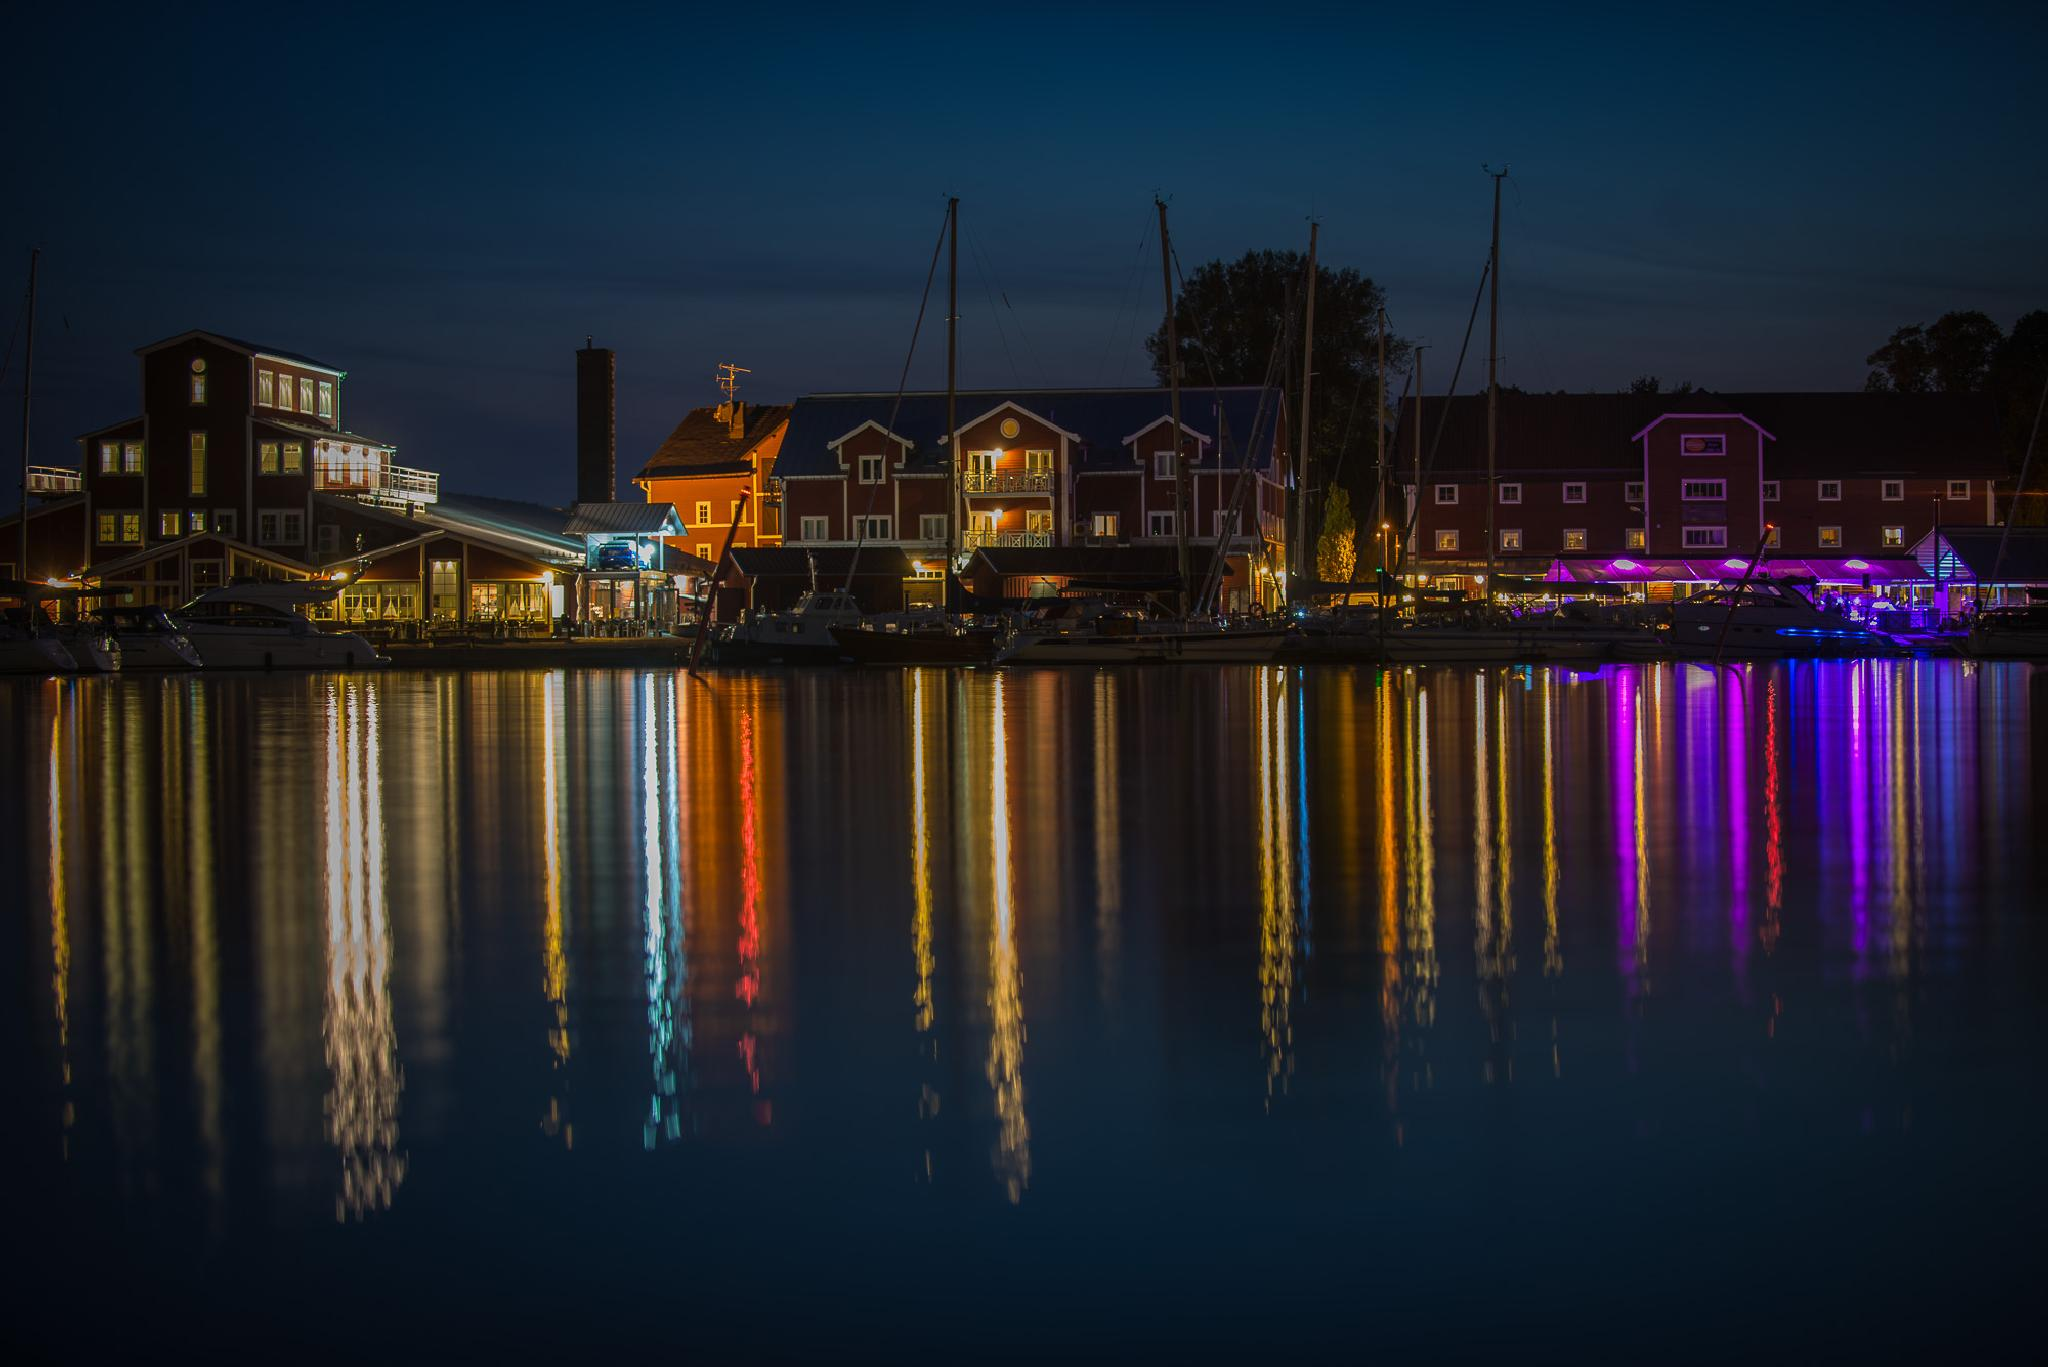 The guest port by elaine.karlsson